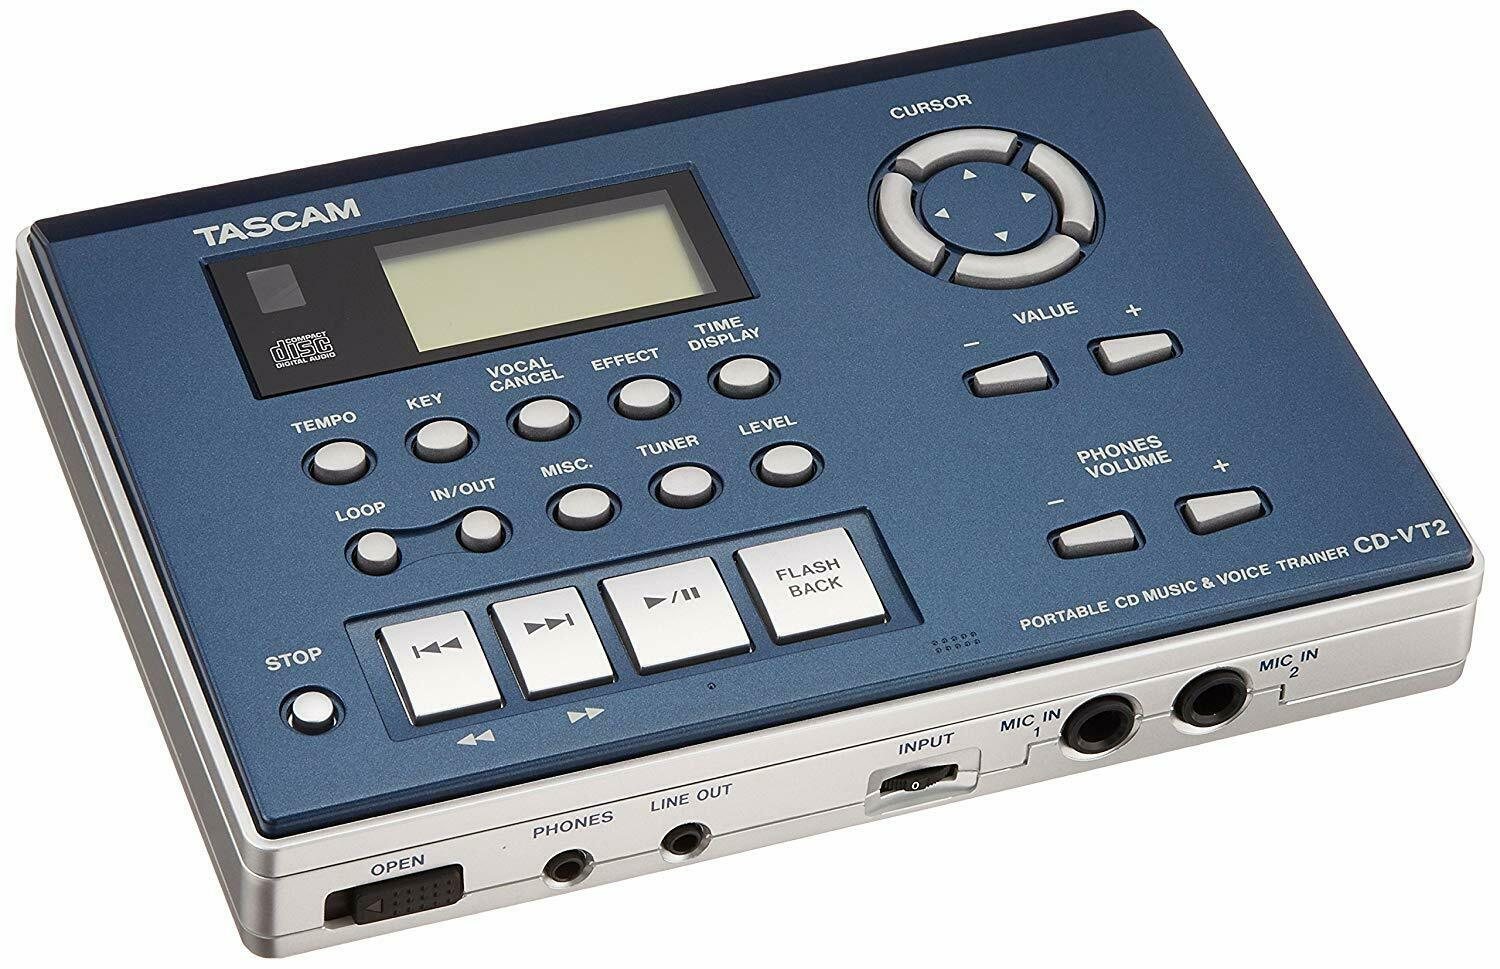 TASCAM CD trainer for vocals CD-VT 2 Japan NEW